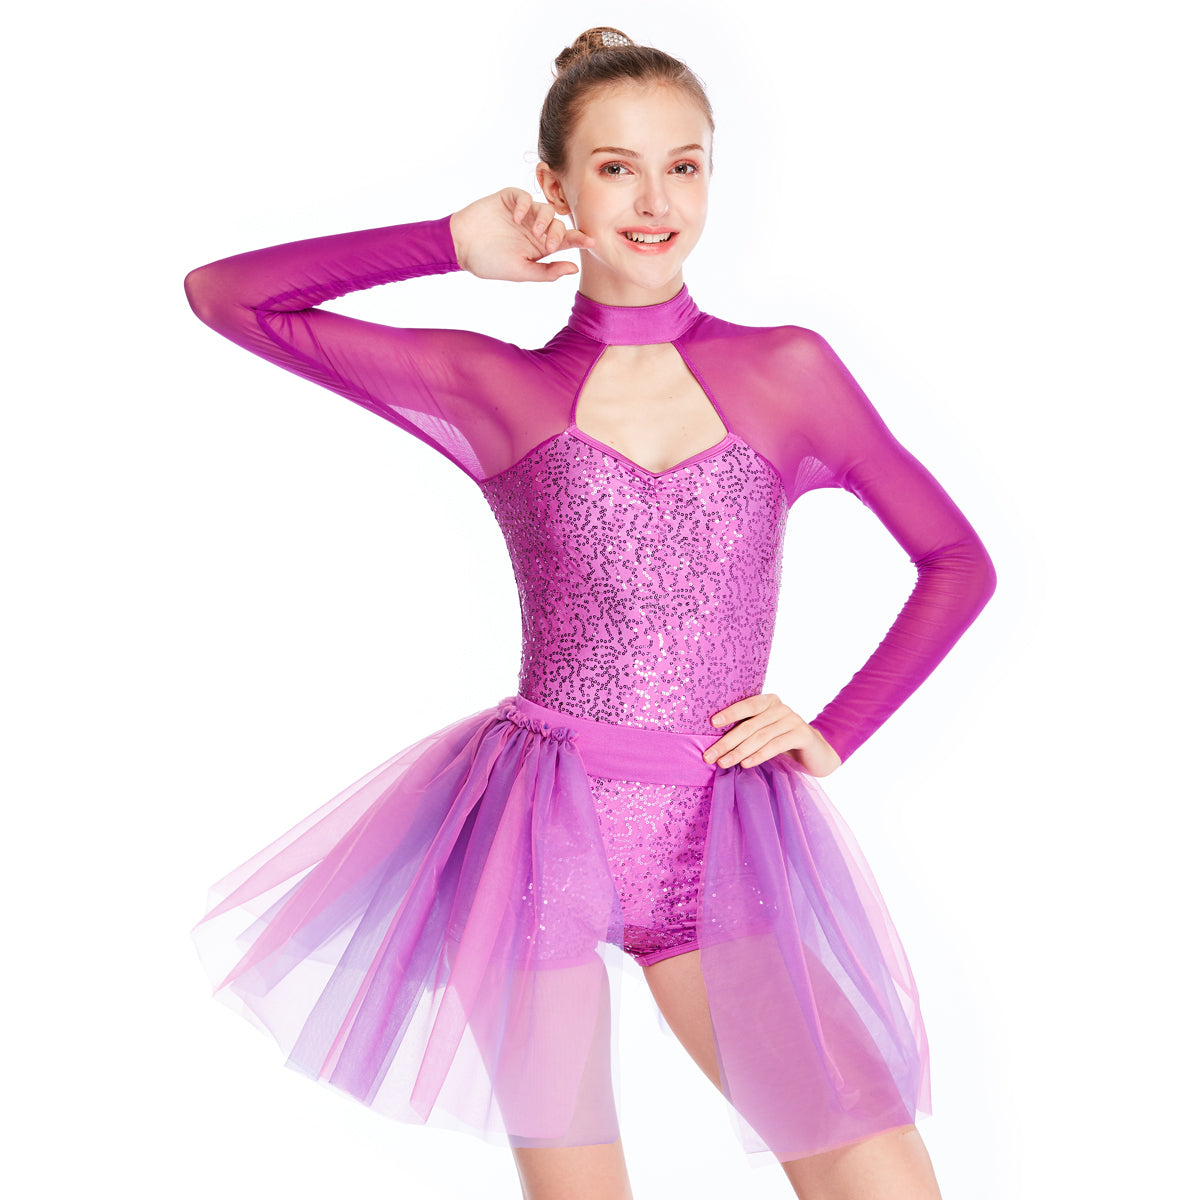 b0e9cb6df ... MiDee Sequins Modern Lyrical Dance Costumes Gymnastics Performance  Costumes ...